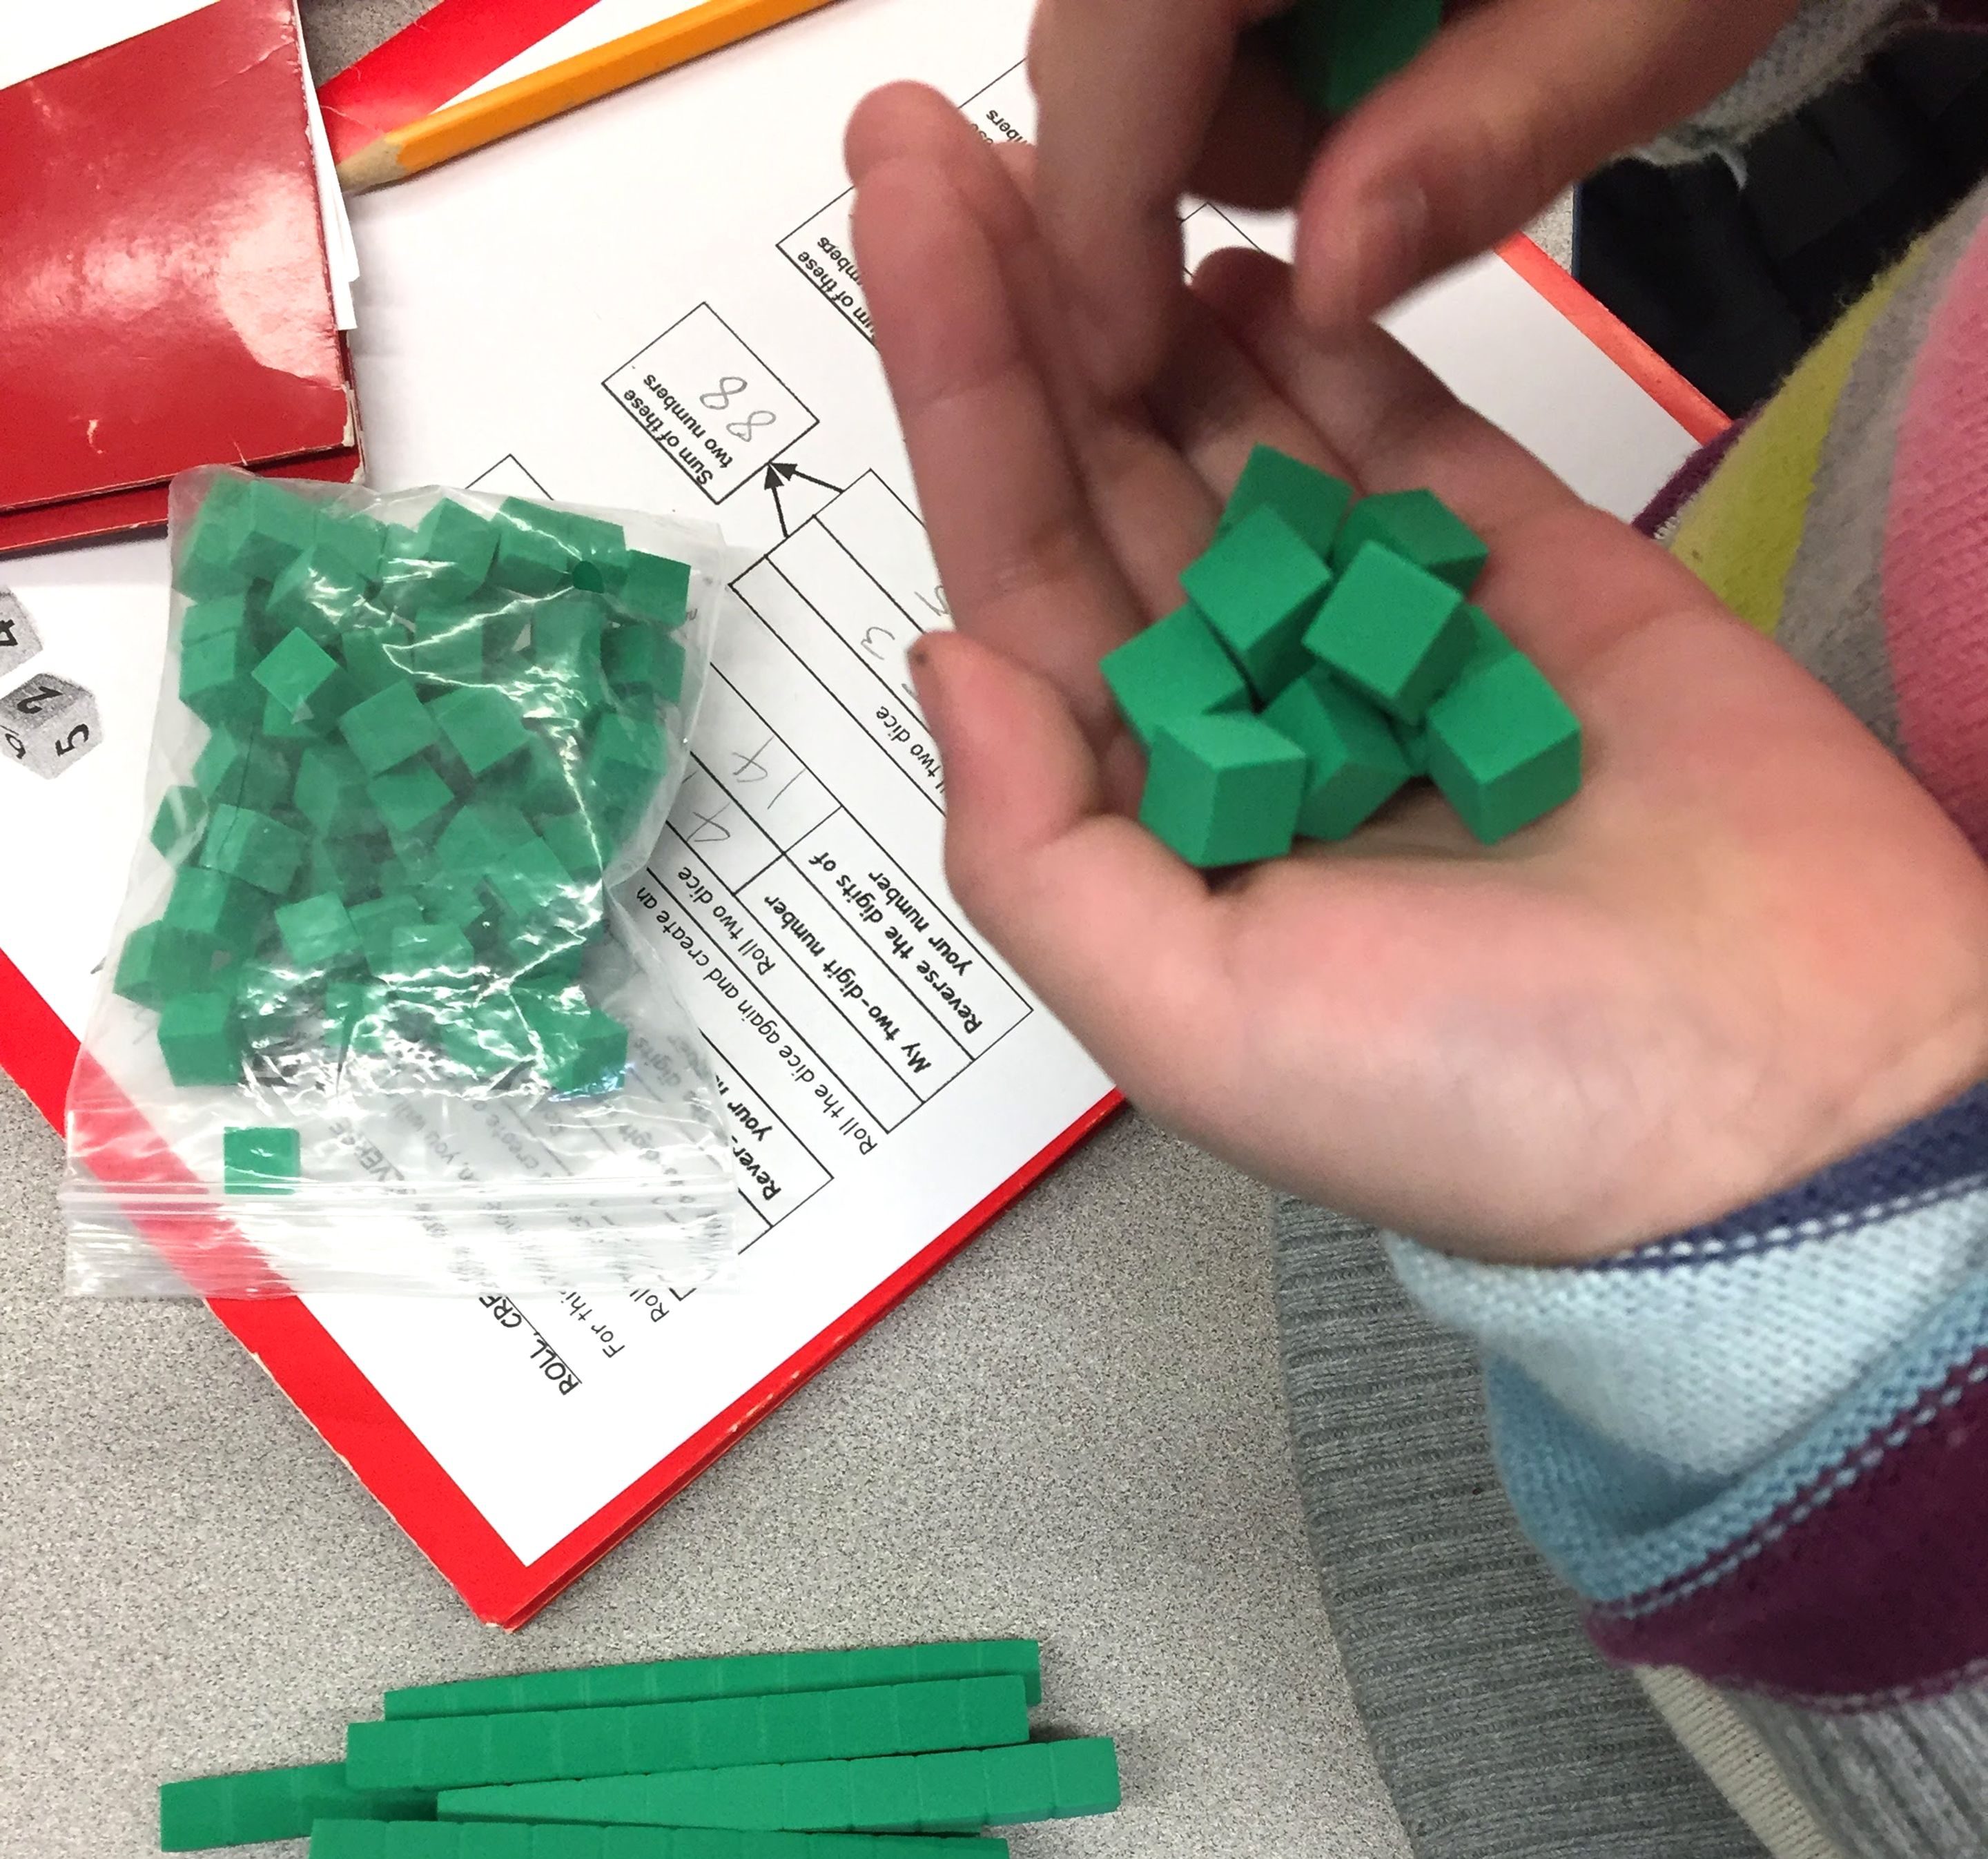 A child's hand holding green base ten blocks for a math game